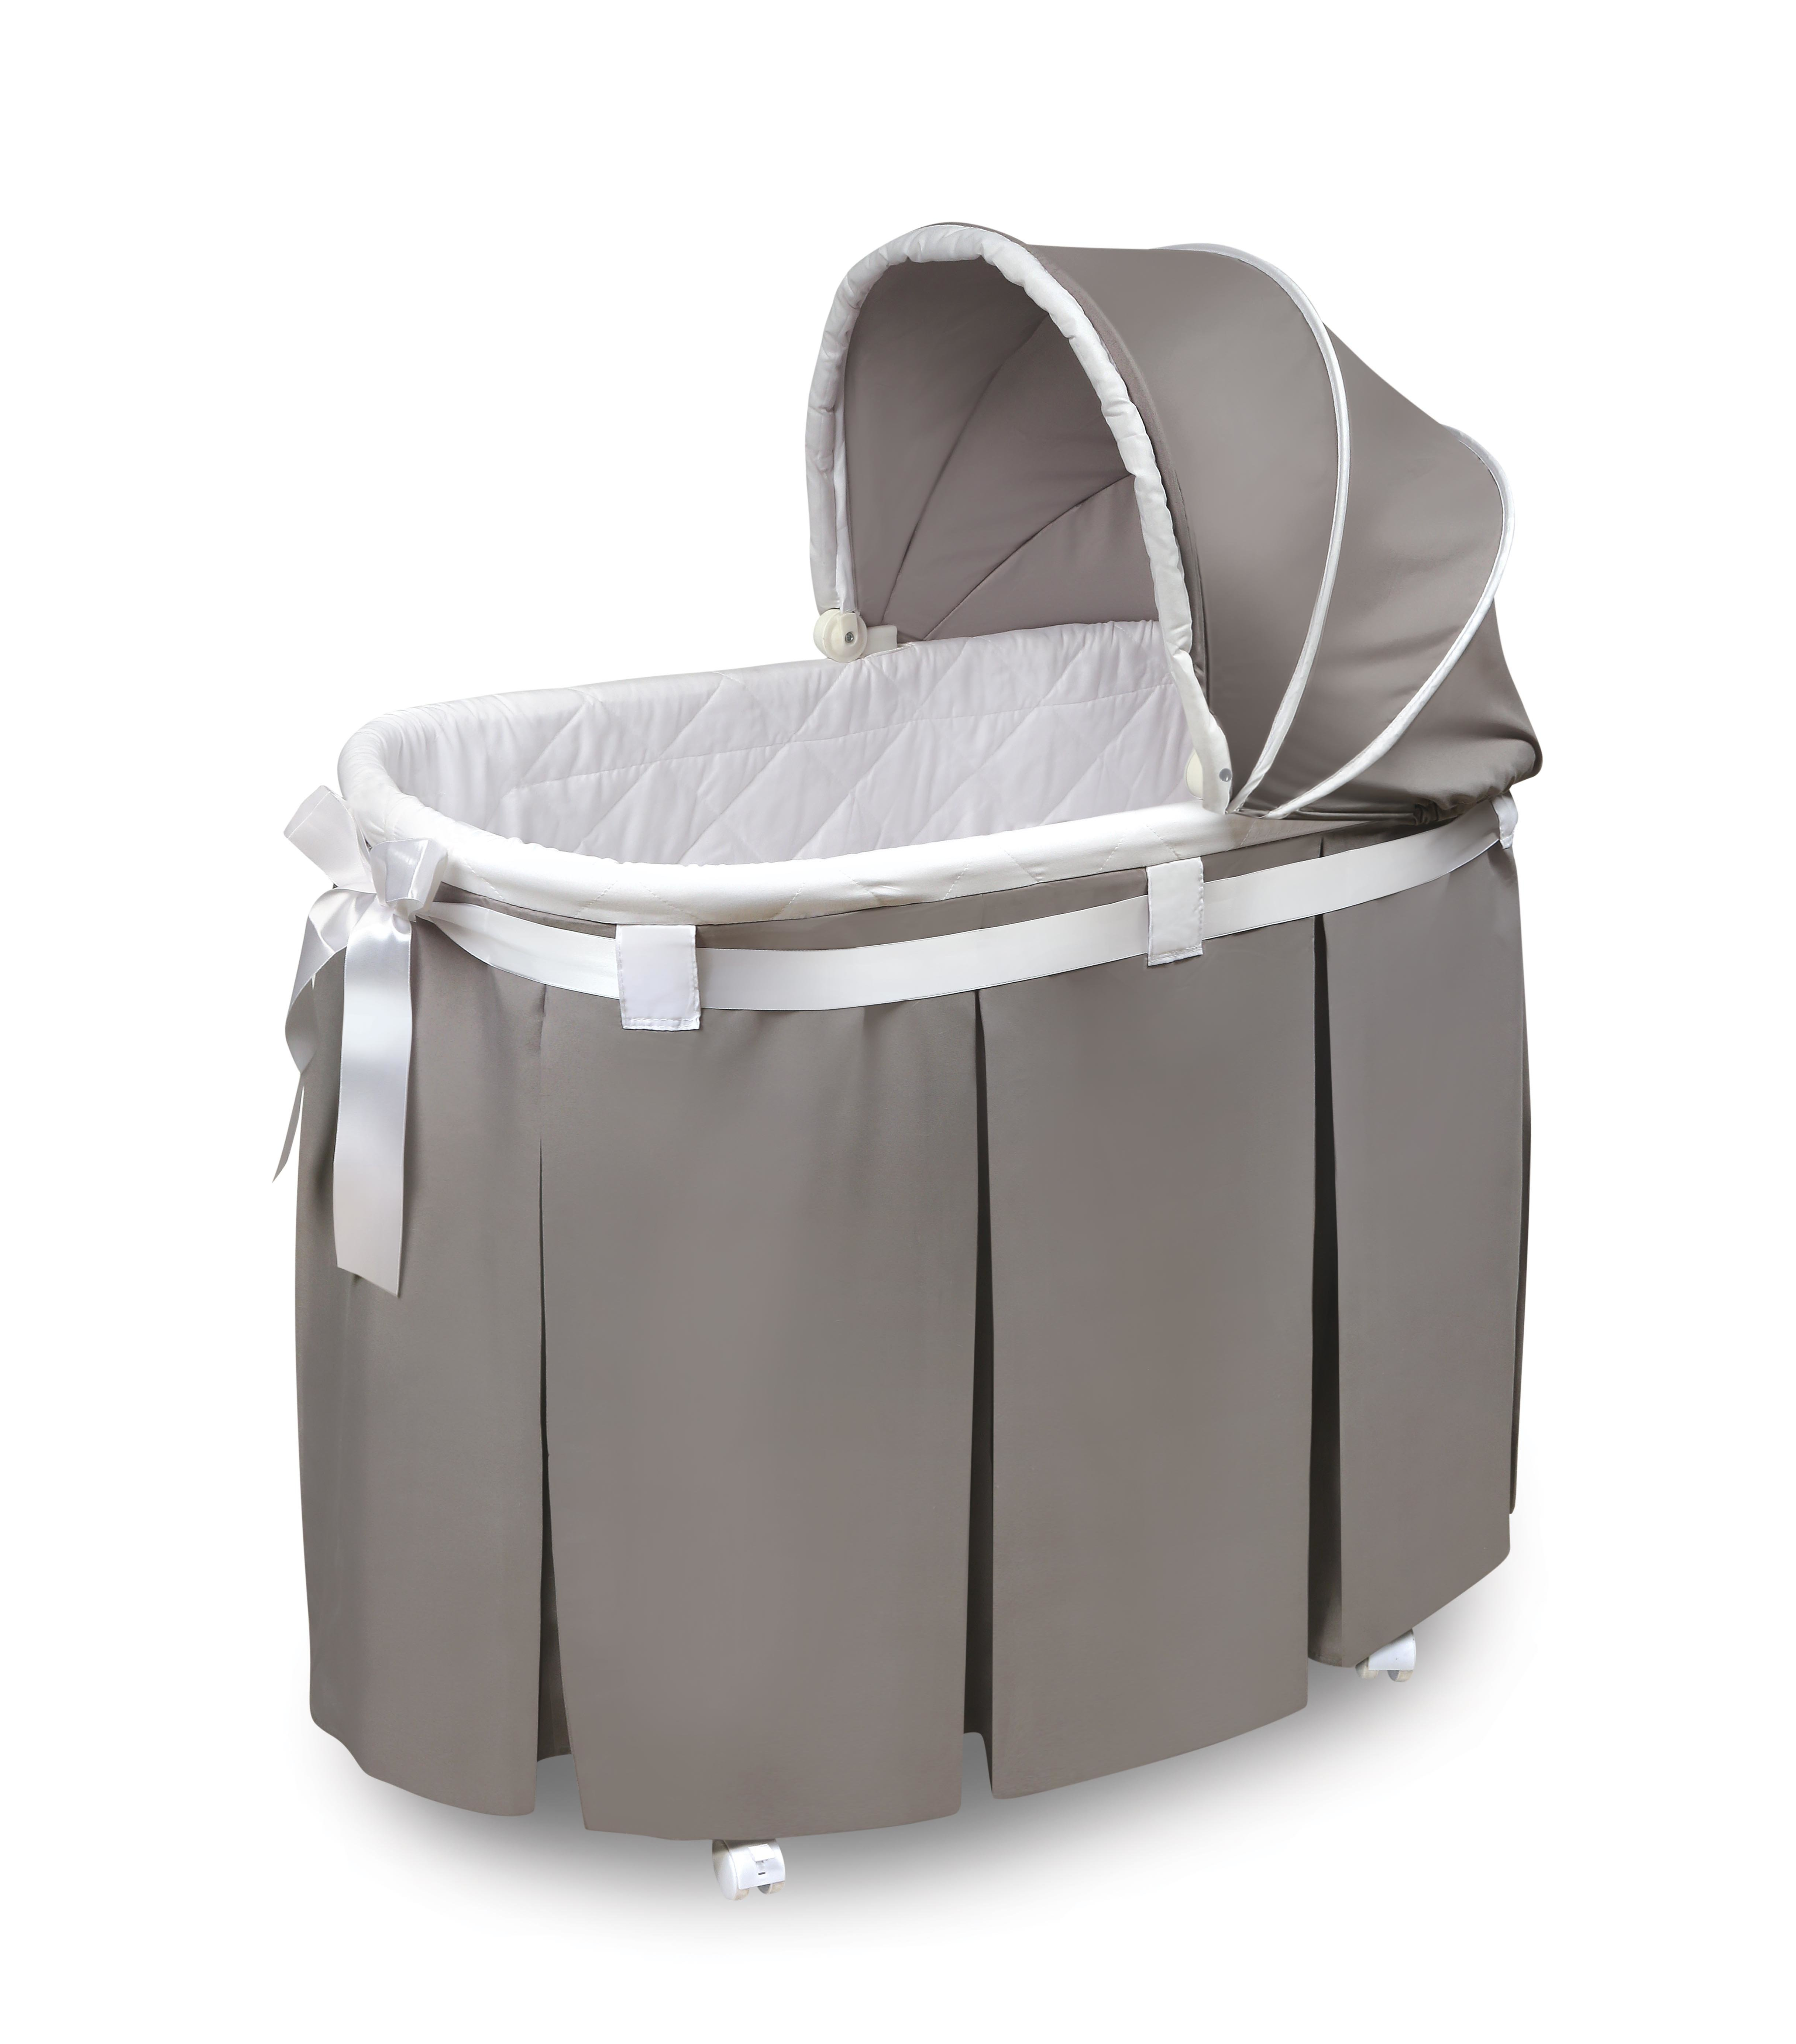 Badger Basket Wishes Oval Bassinet & Reviews | Wayfair With Bailey Mist Track Arm Skirted Swivel Gliders (View 25 of 25)